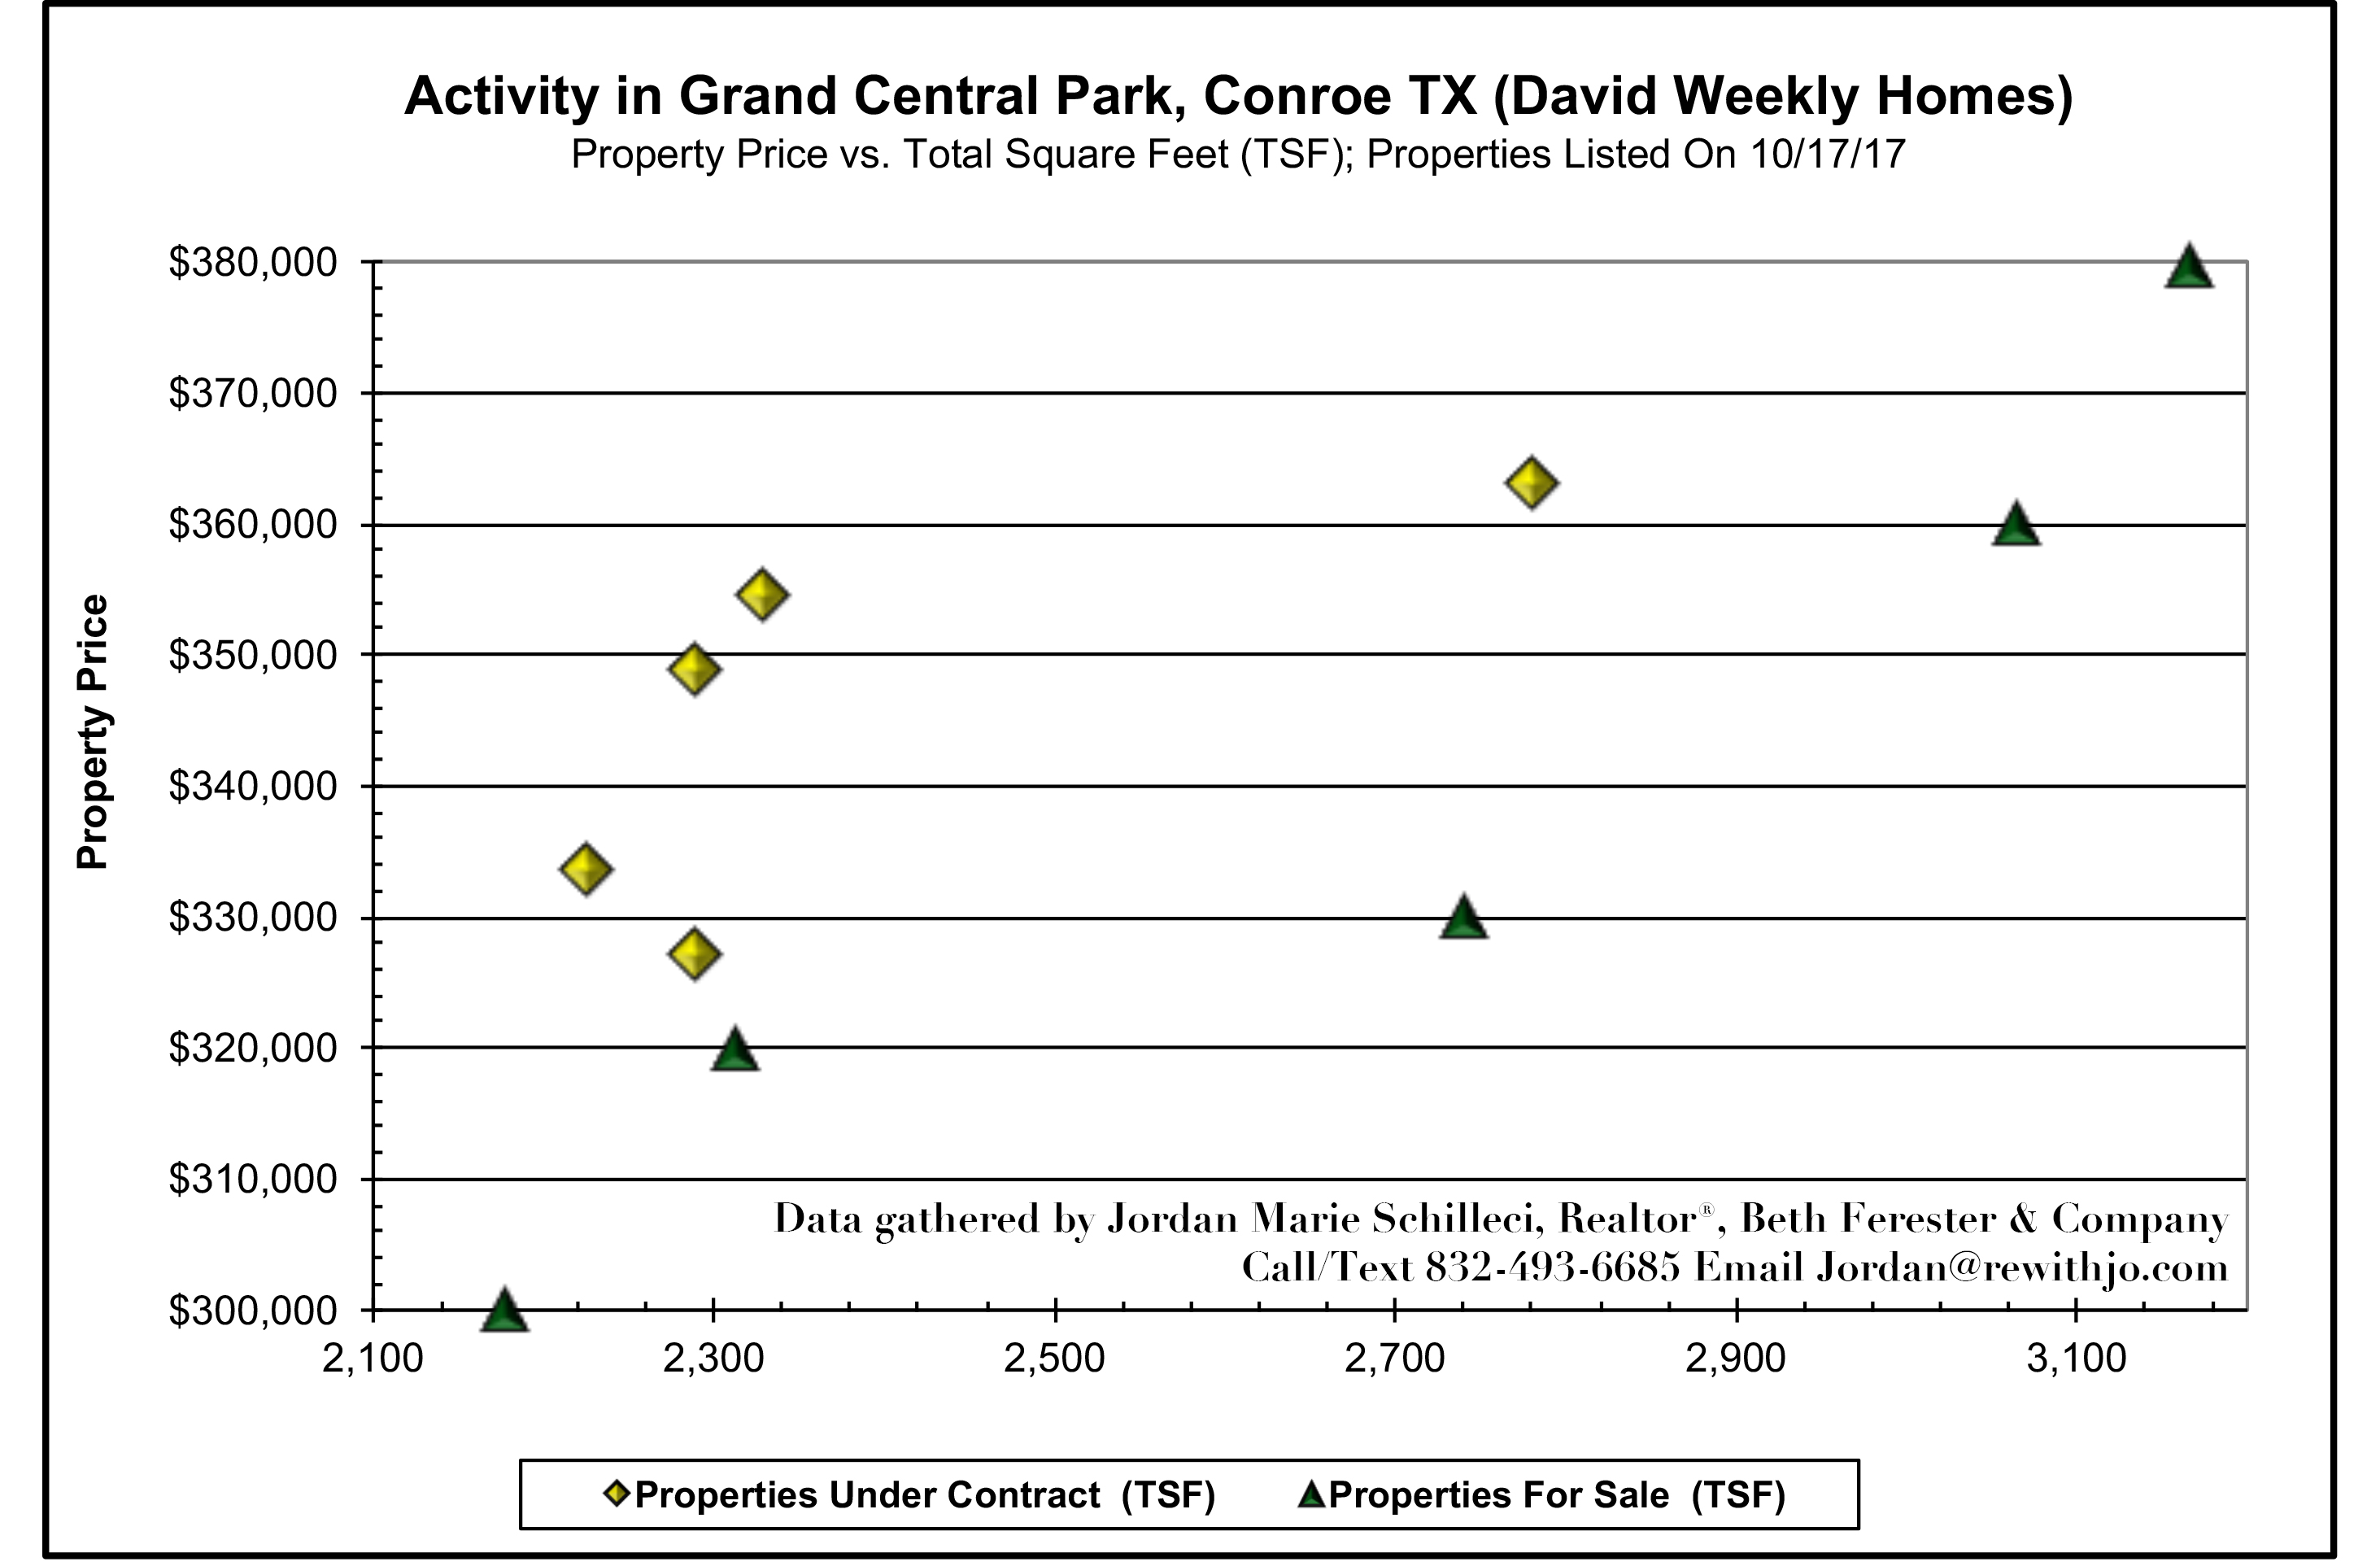 David Weekly Homes in Grand Central Park Conroe TX near The Woodlands Mid-October 2017